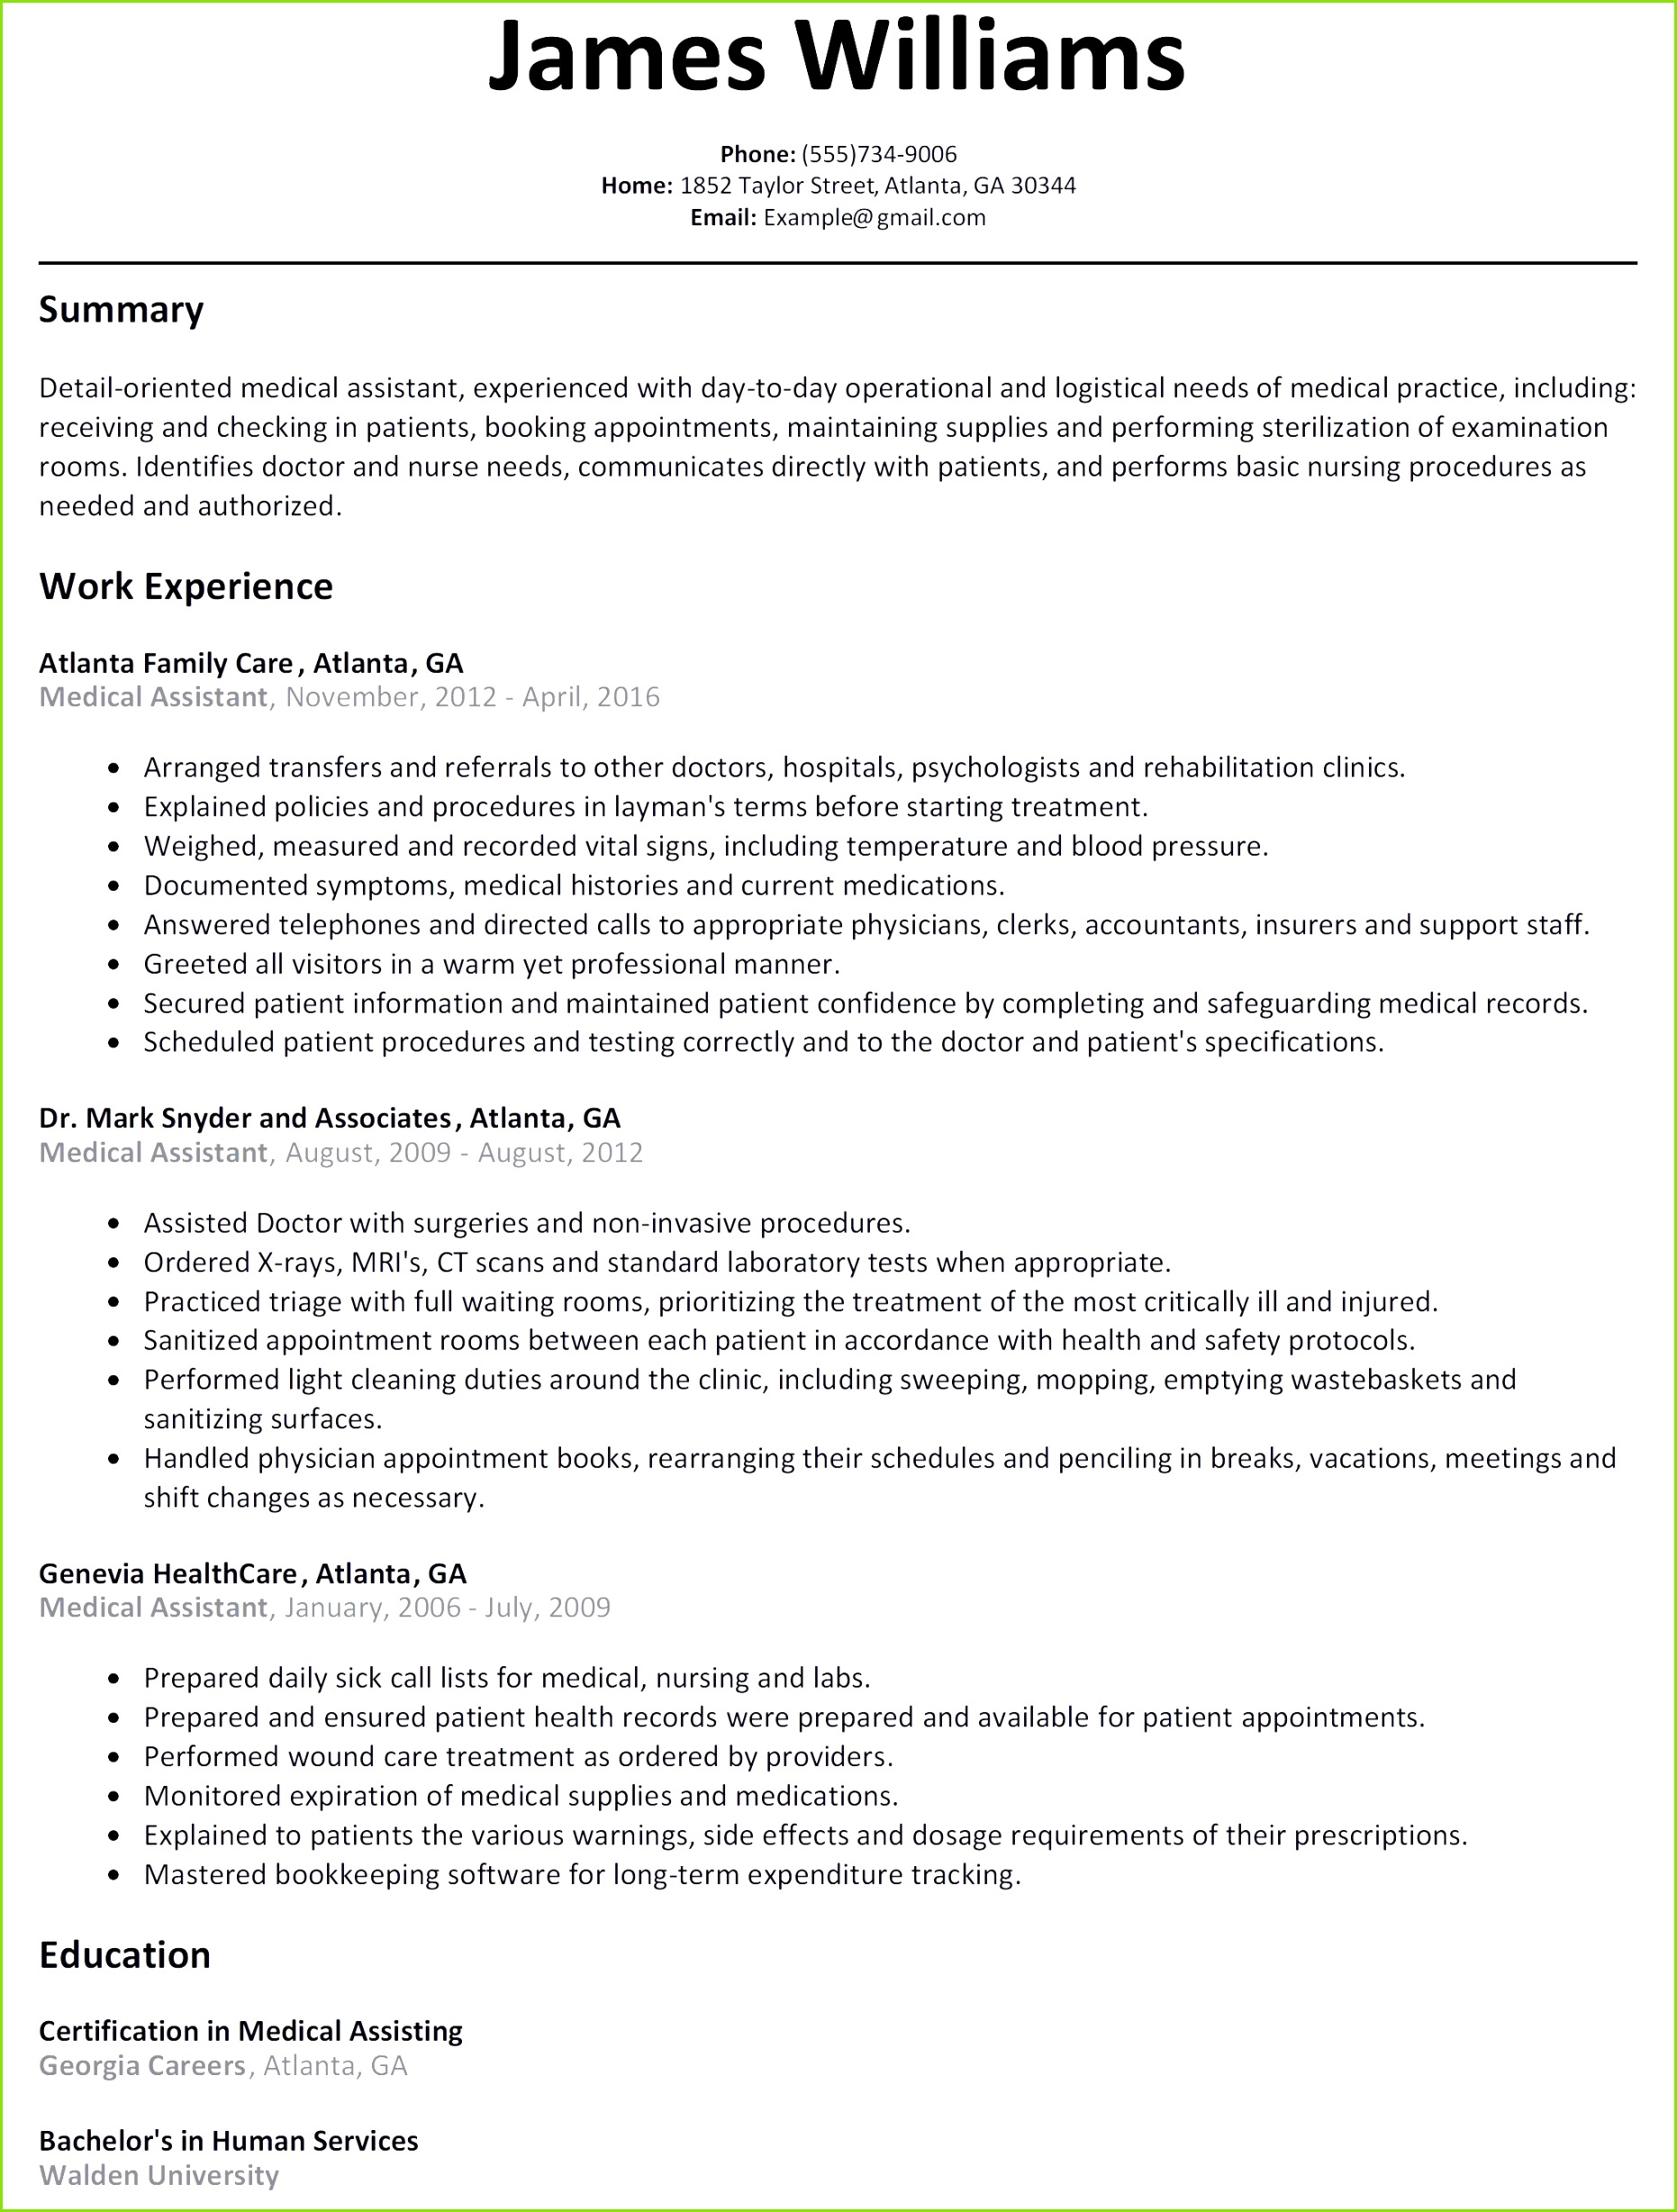 Professional Poster Design Templates Lovely Resume Designs Templates Luxury Resume Template Free Word New Od